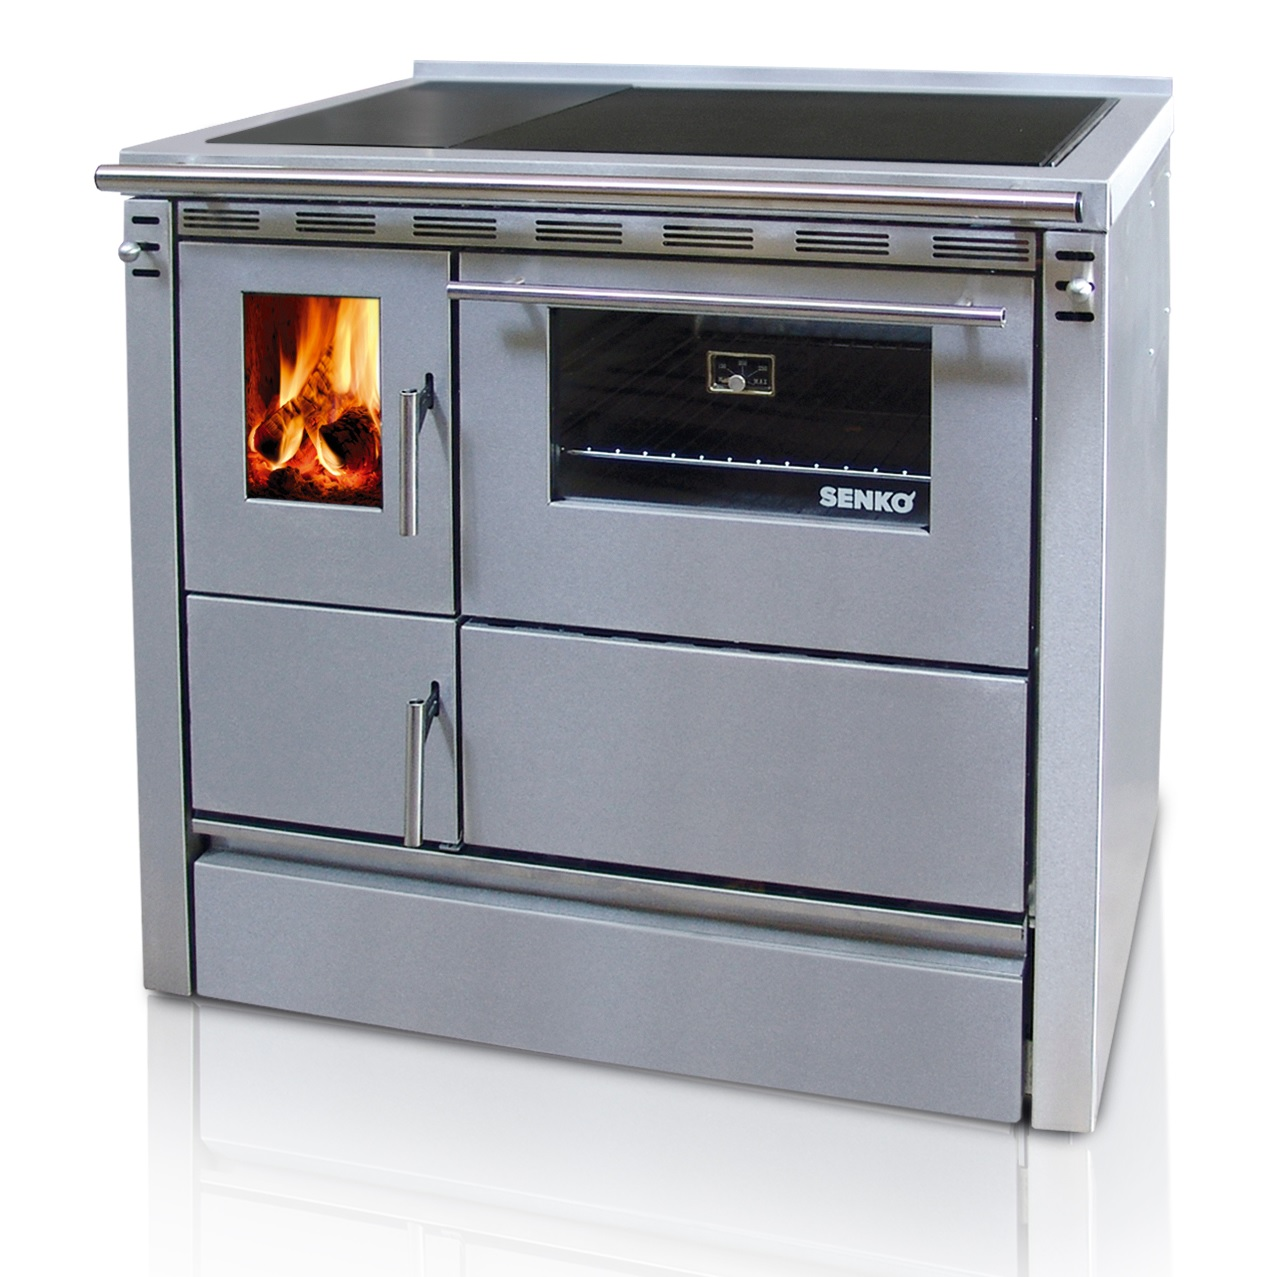 SENKO solid fuel cooker SG-90 2390D (7.5kW), chimney connection on ...